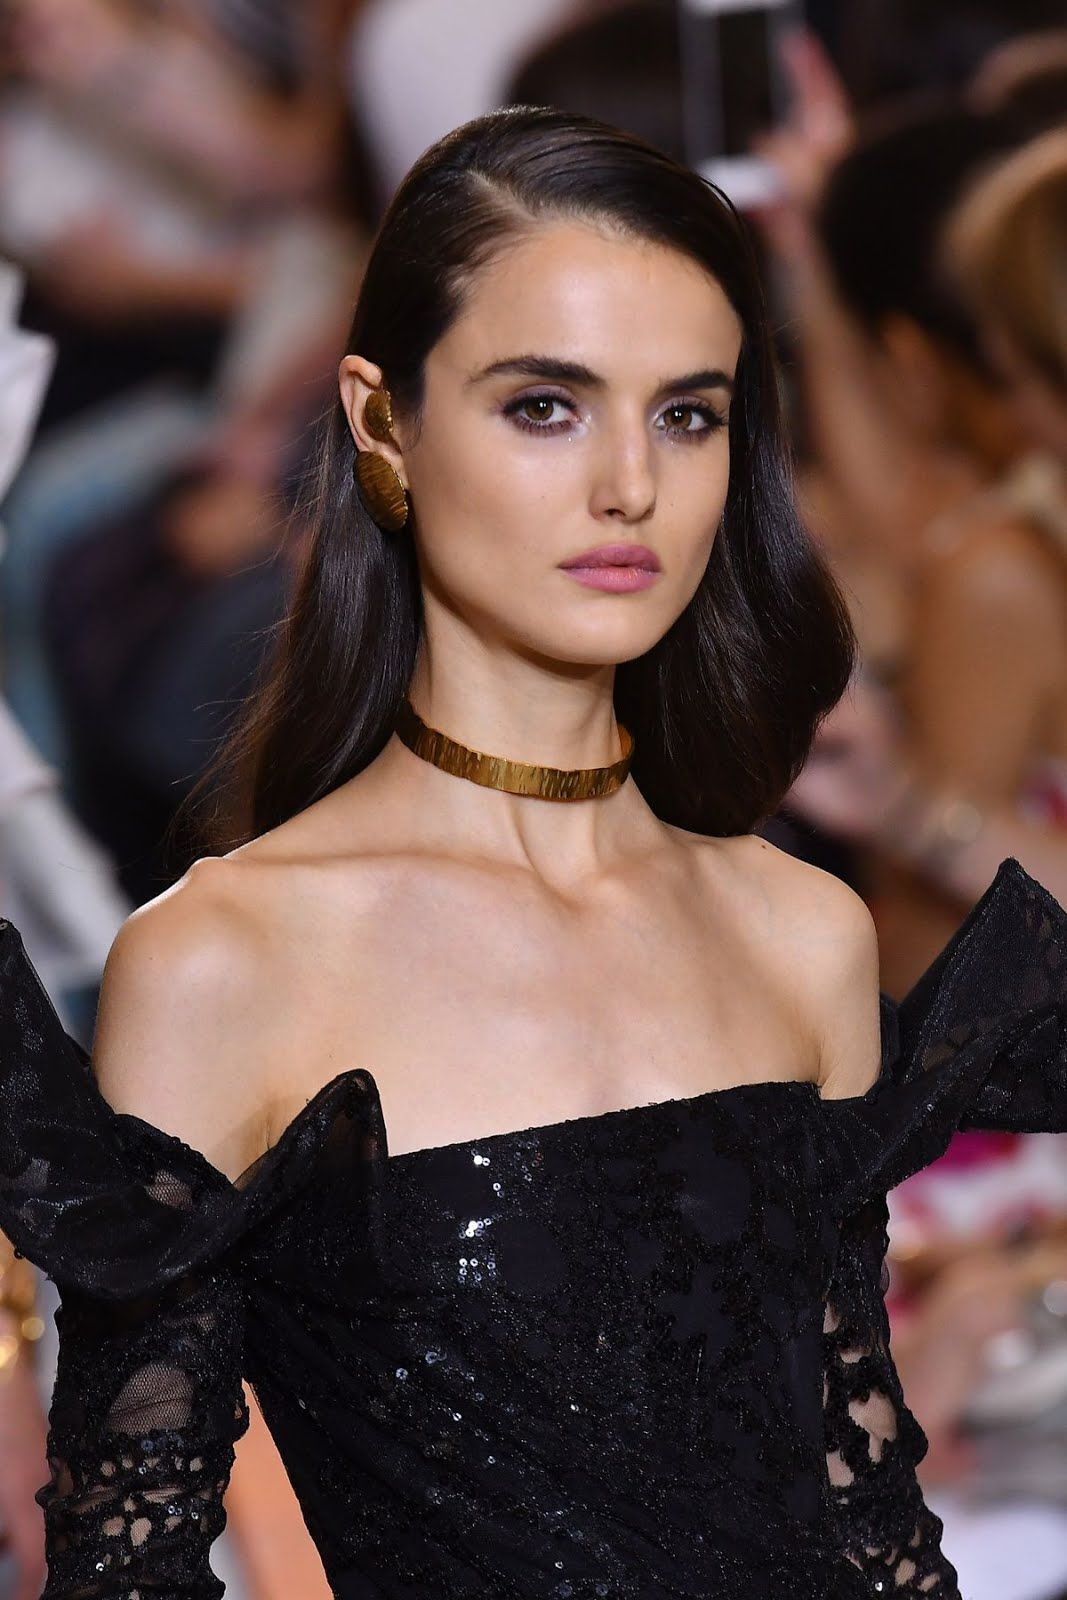 Celebrites Blanca Padilla nude (85 photos), Topless, Fappening, Instagram, butt 2018